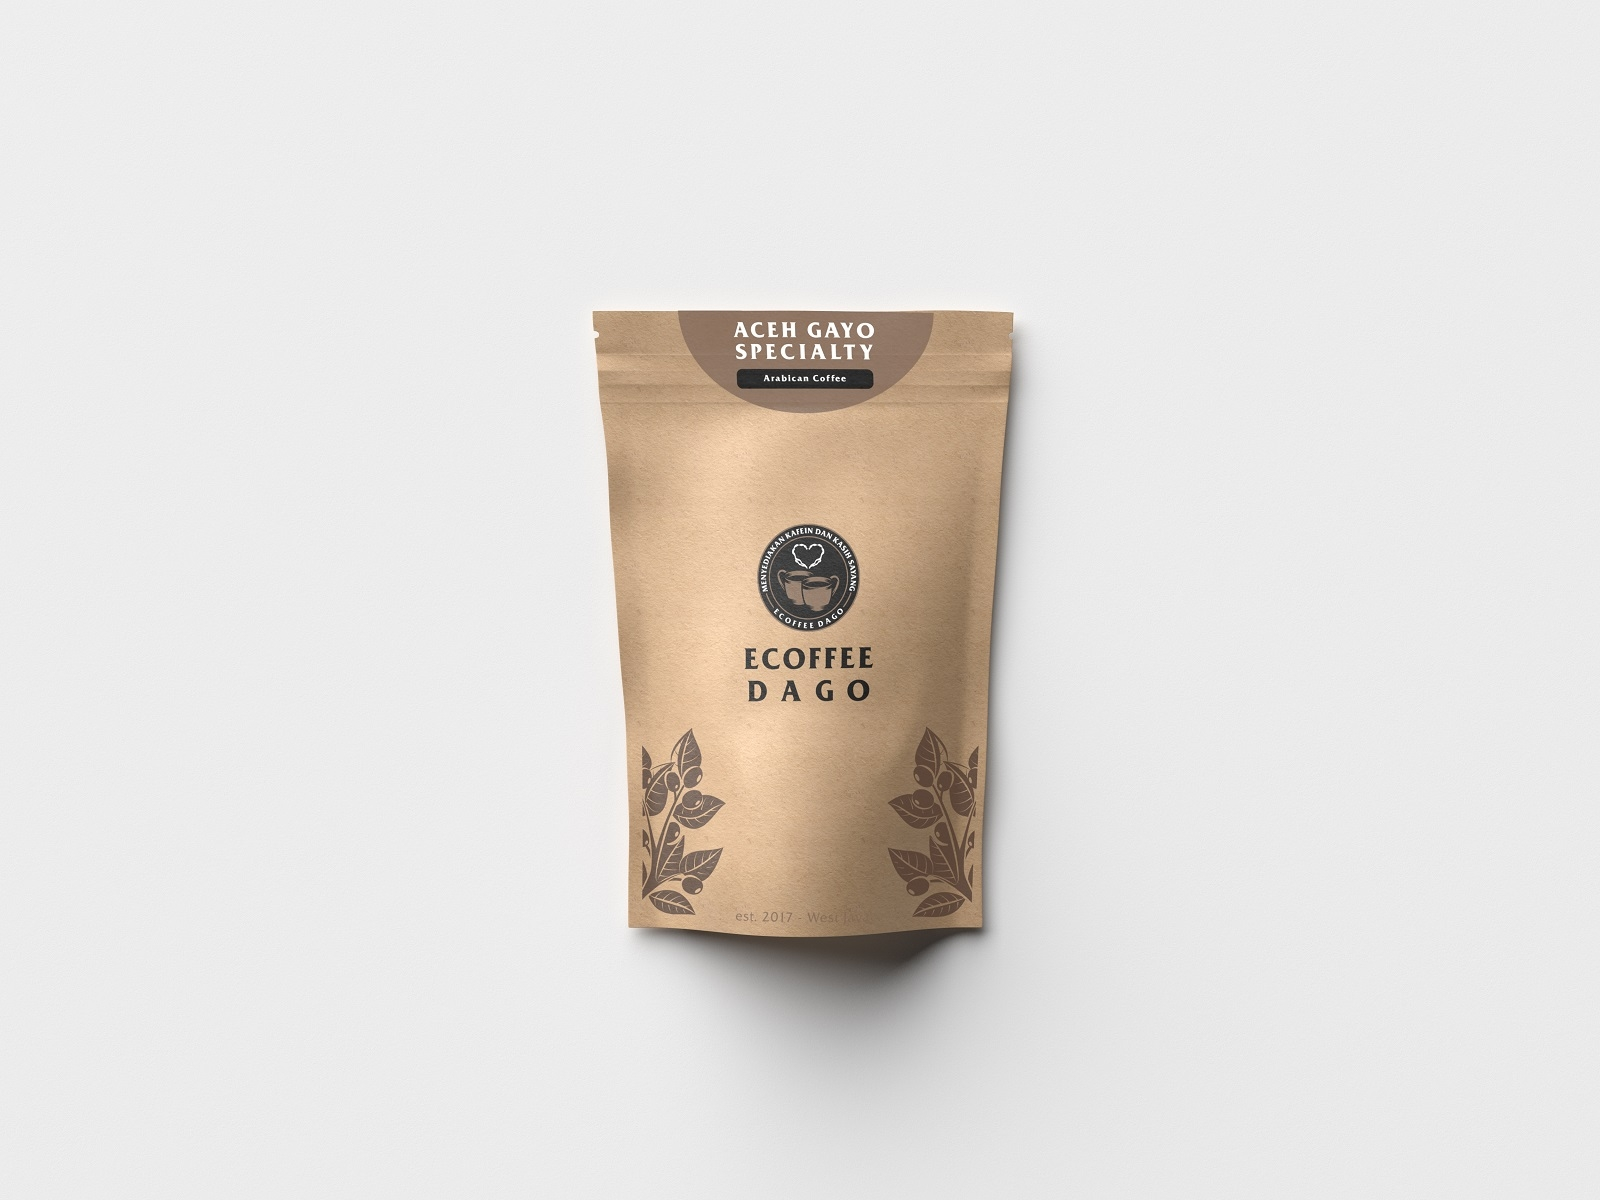 Coffee bag mockup | 30+ best coffee bag psd mockup templates free & premium: Coffee Bag Mockup Designs Themes Templates And Downloadable Graphic Elements On Dribbble